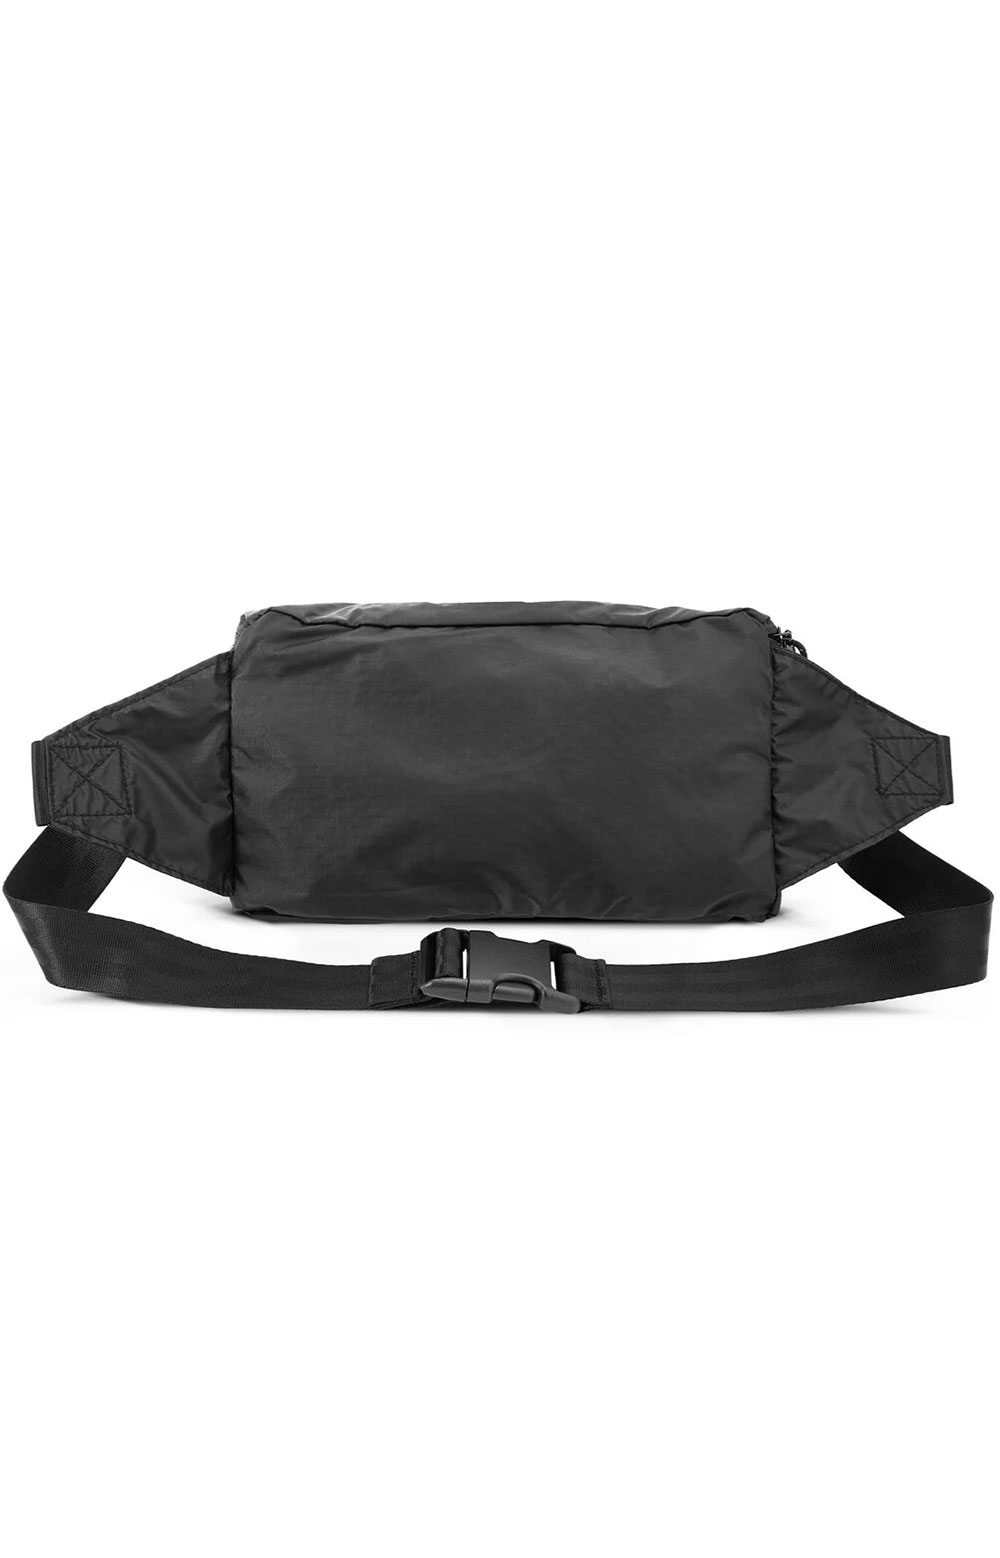 (BG-300-BK) Packable Waistpack - Black 4